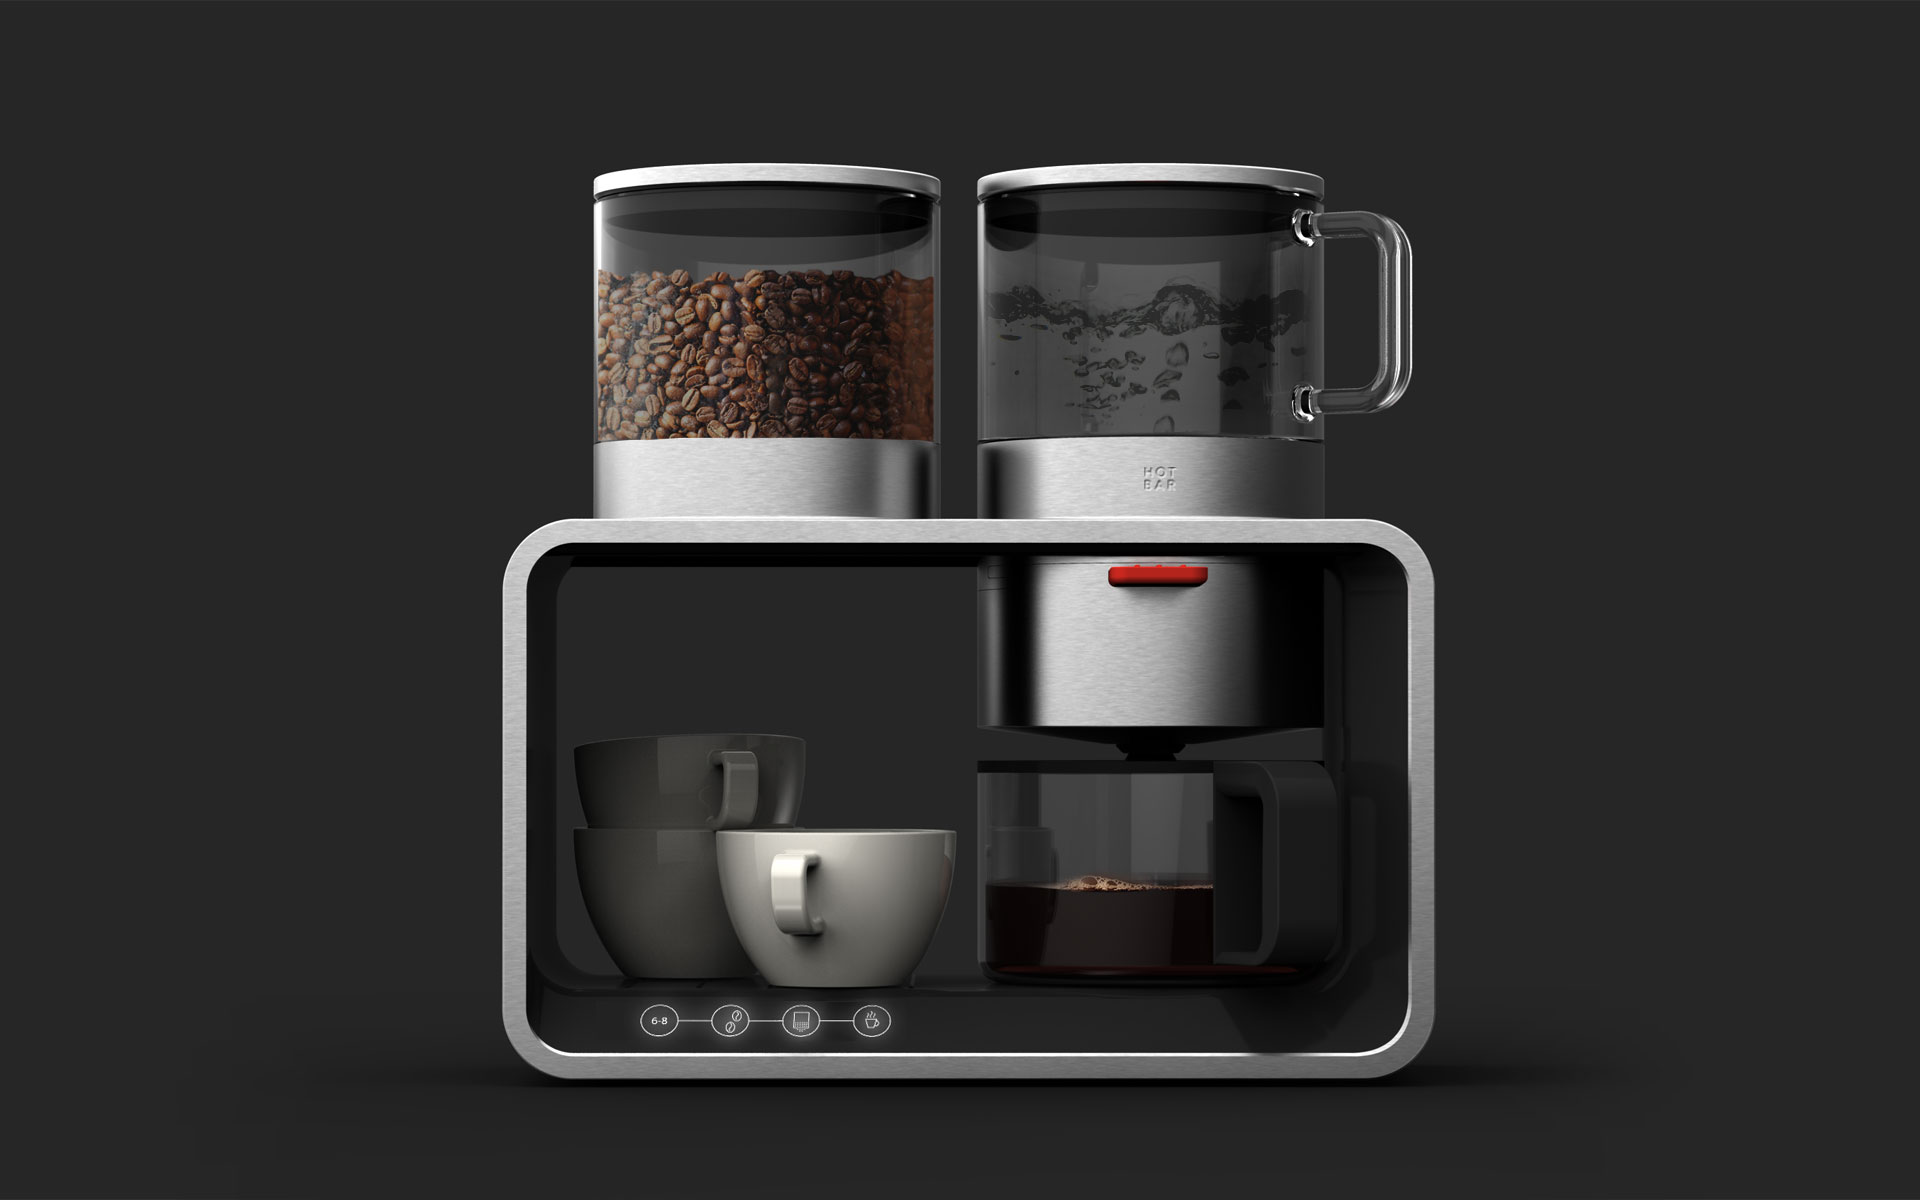 daniels+erdwiens product design concept modular coffee- tea- waterbar